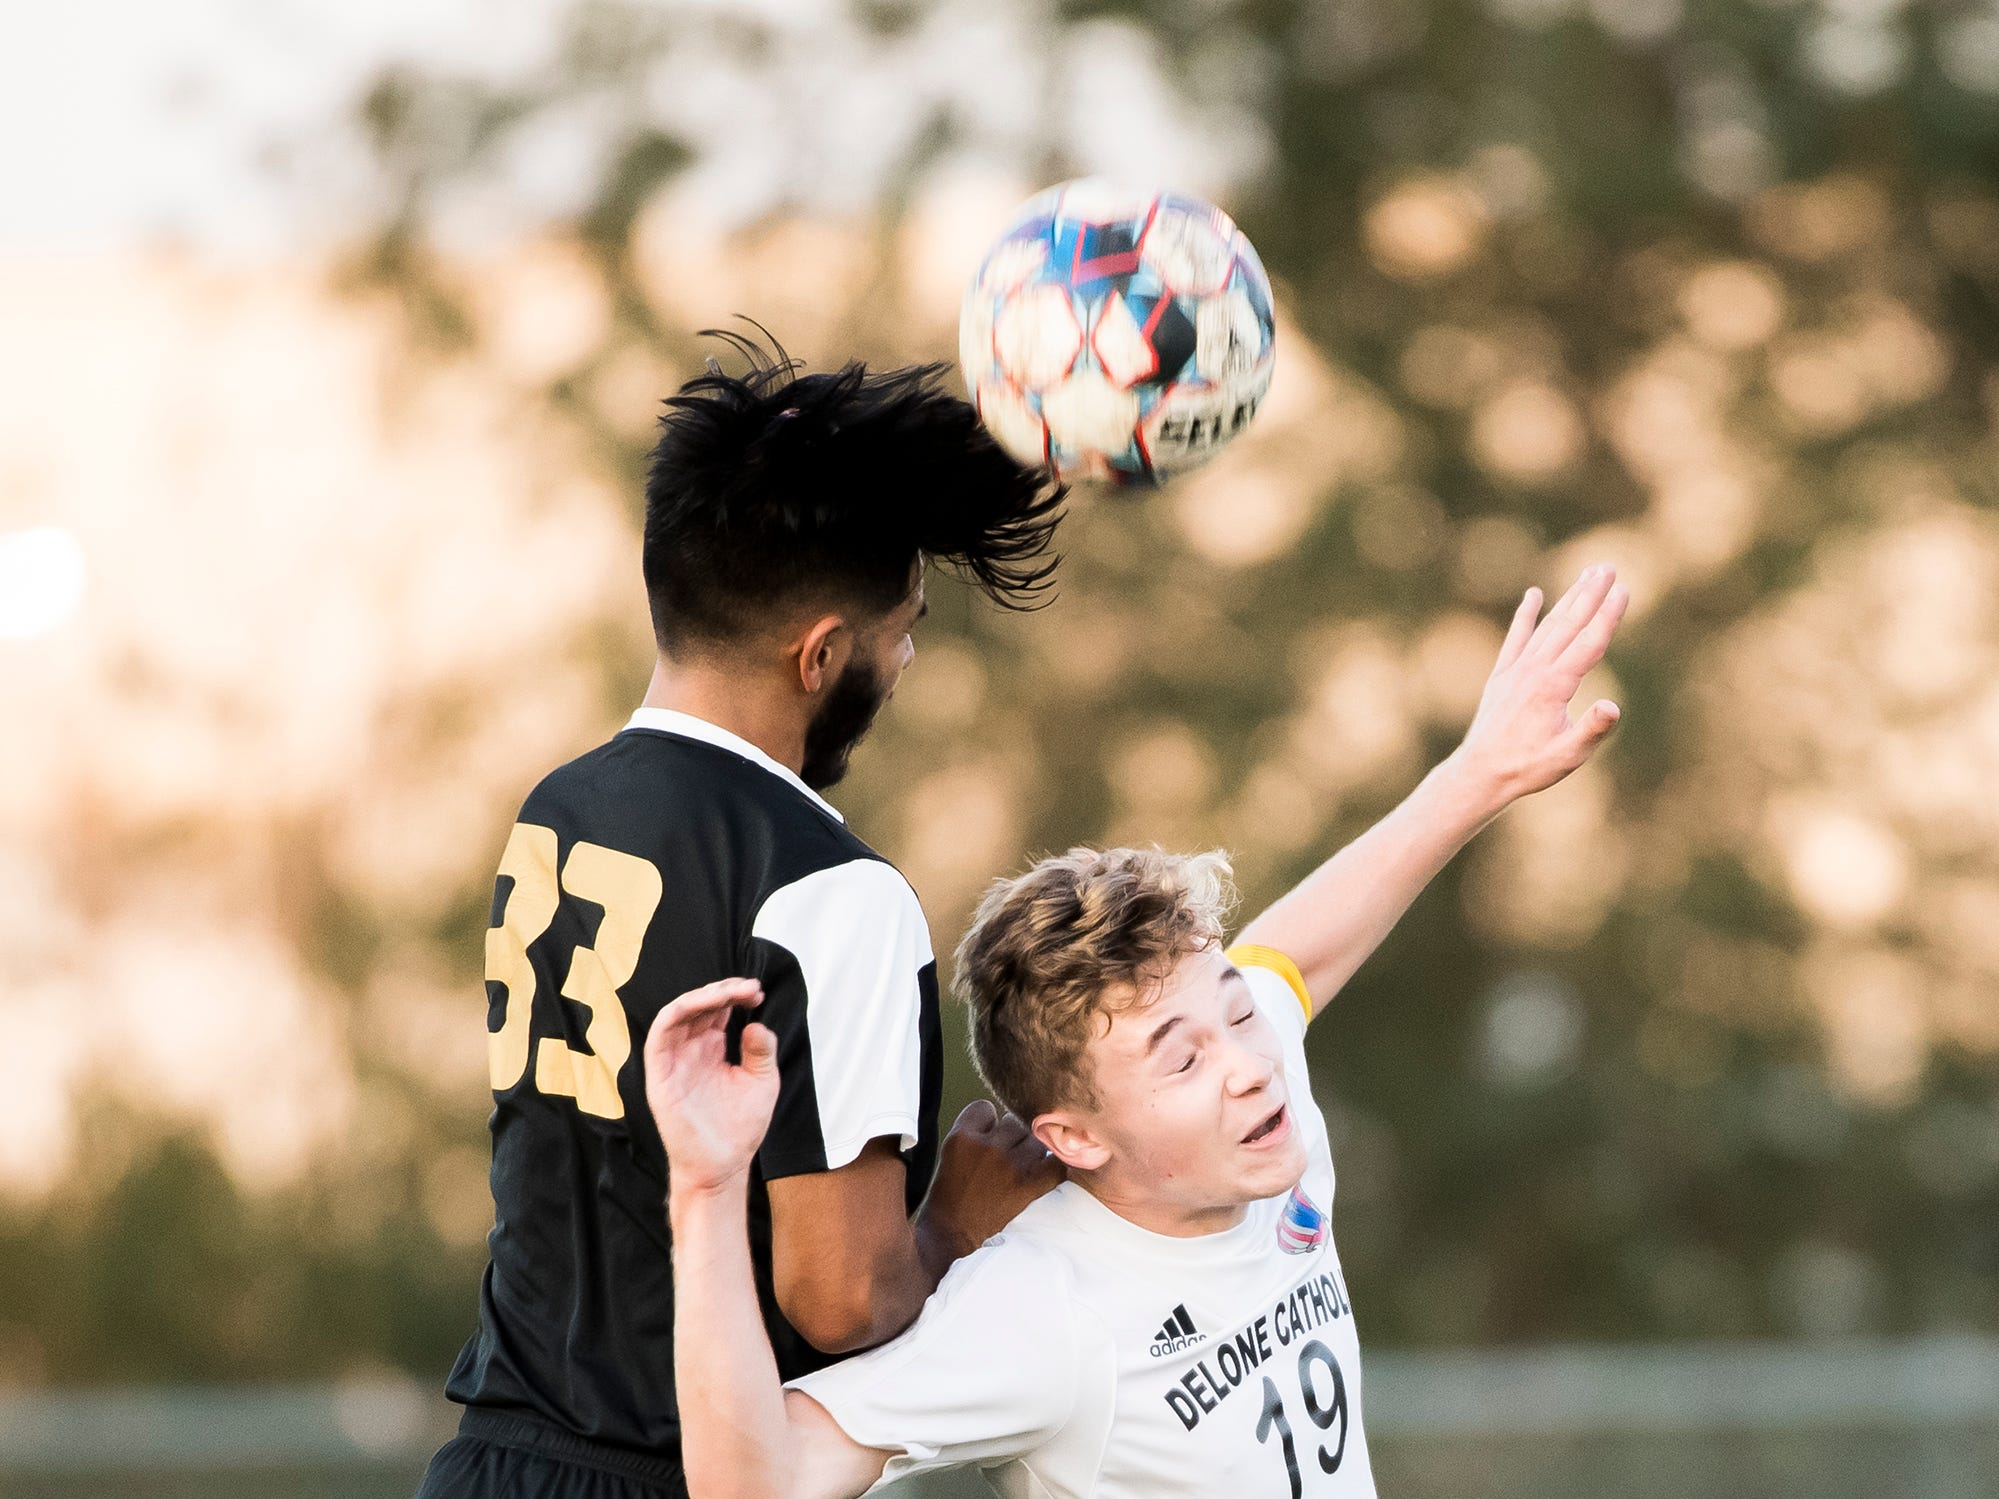 Biglerville's Jorge Acevedo hits a header over Delone Catholic's Noah Roeder on Wednesday, October 3, 2018. The Canners won 3-0.